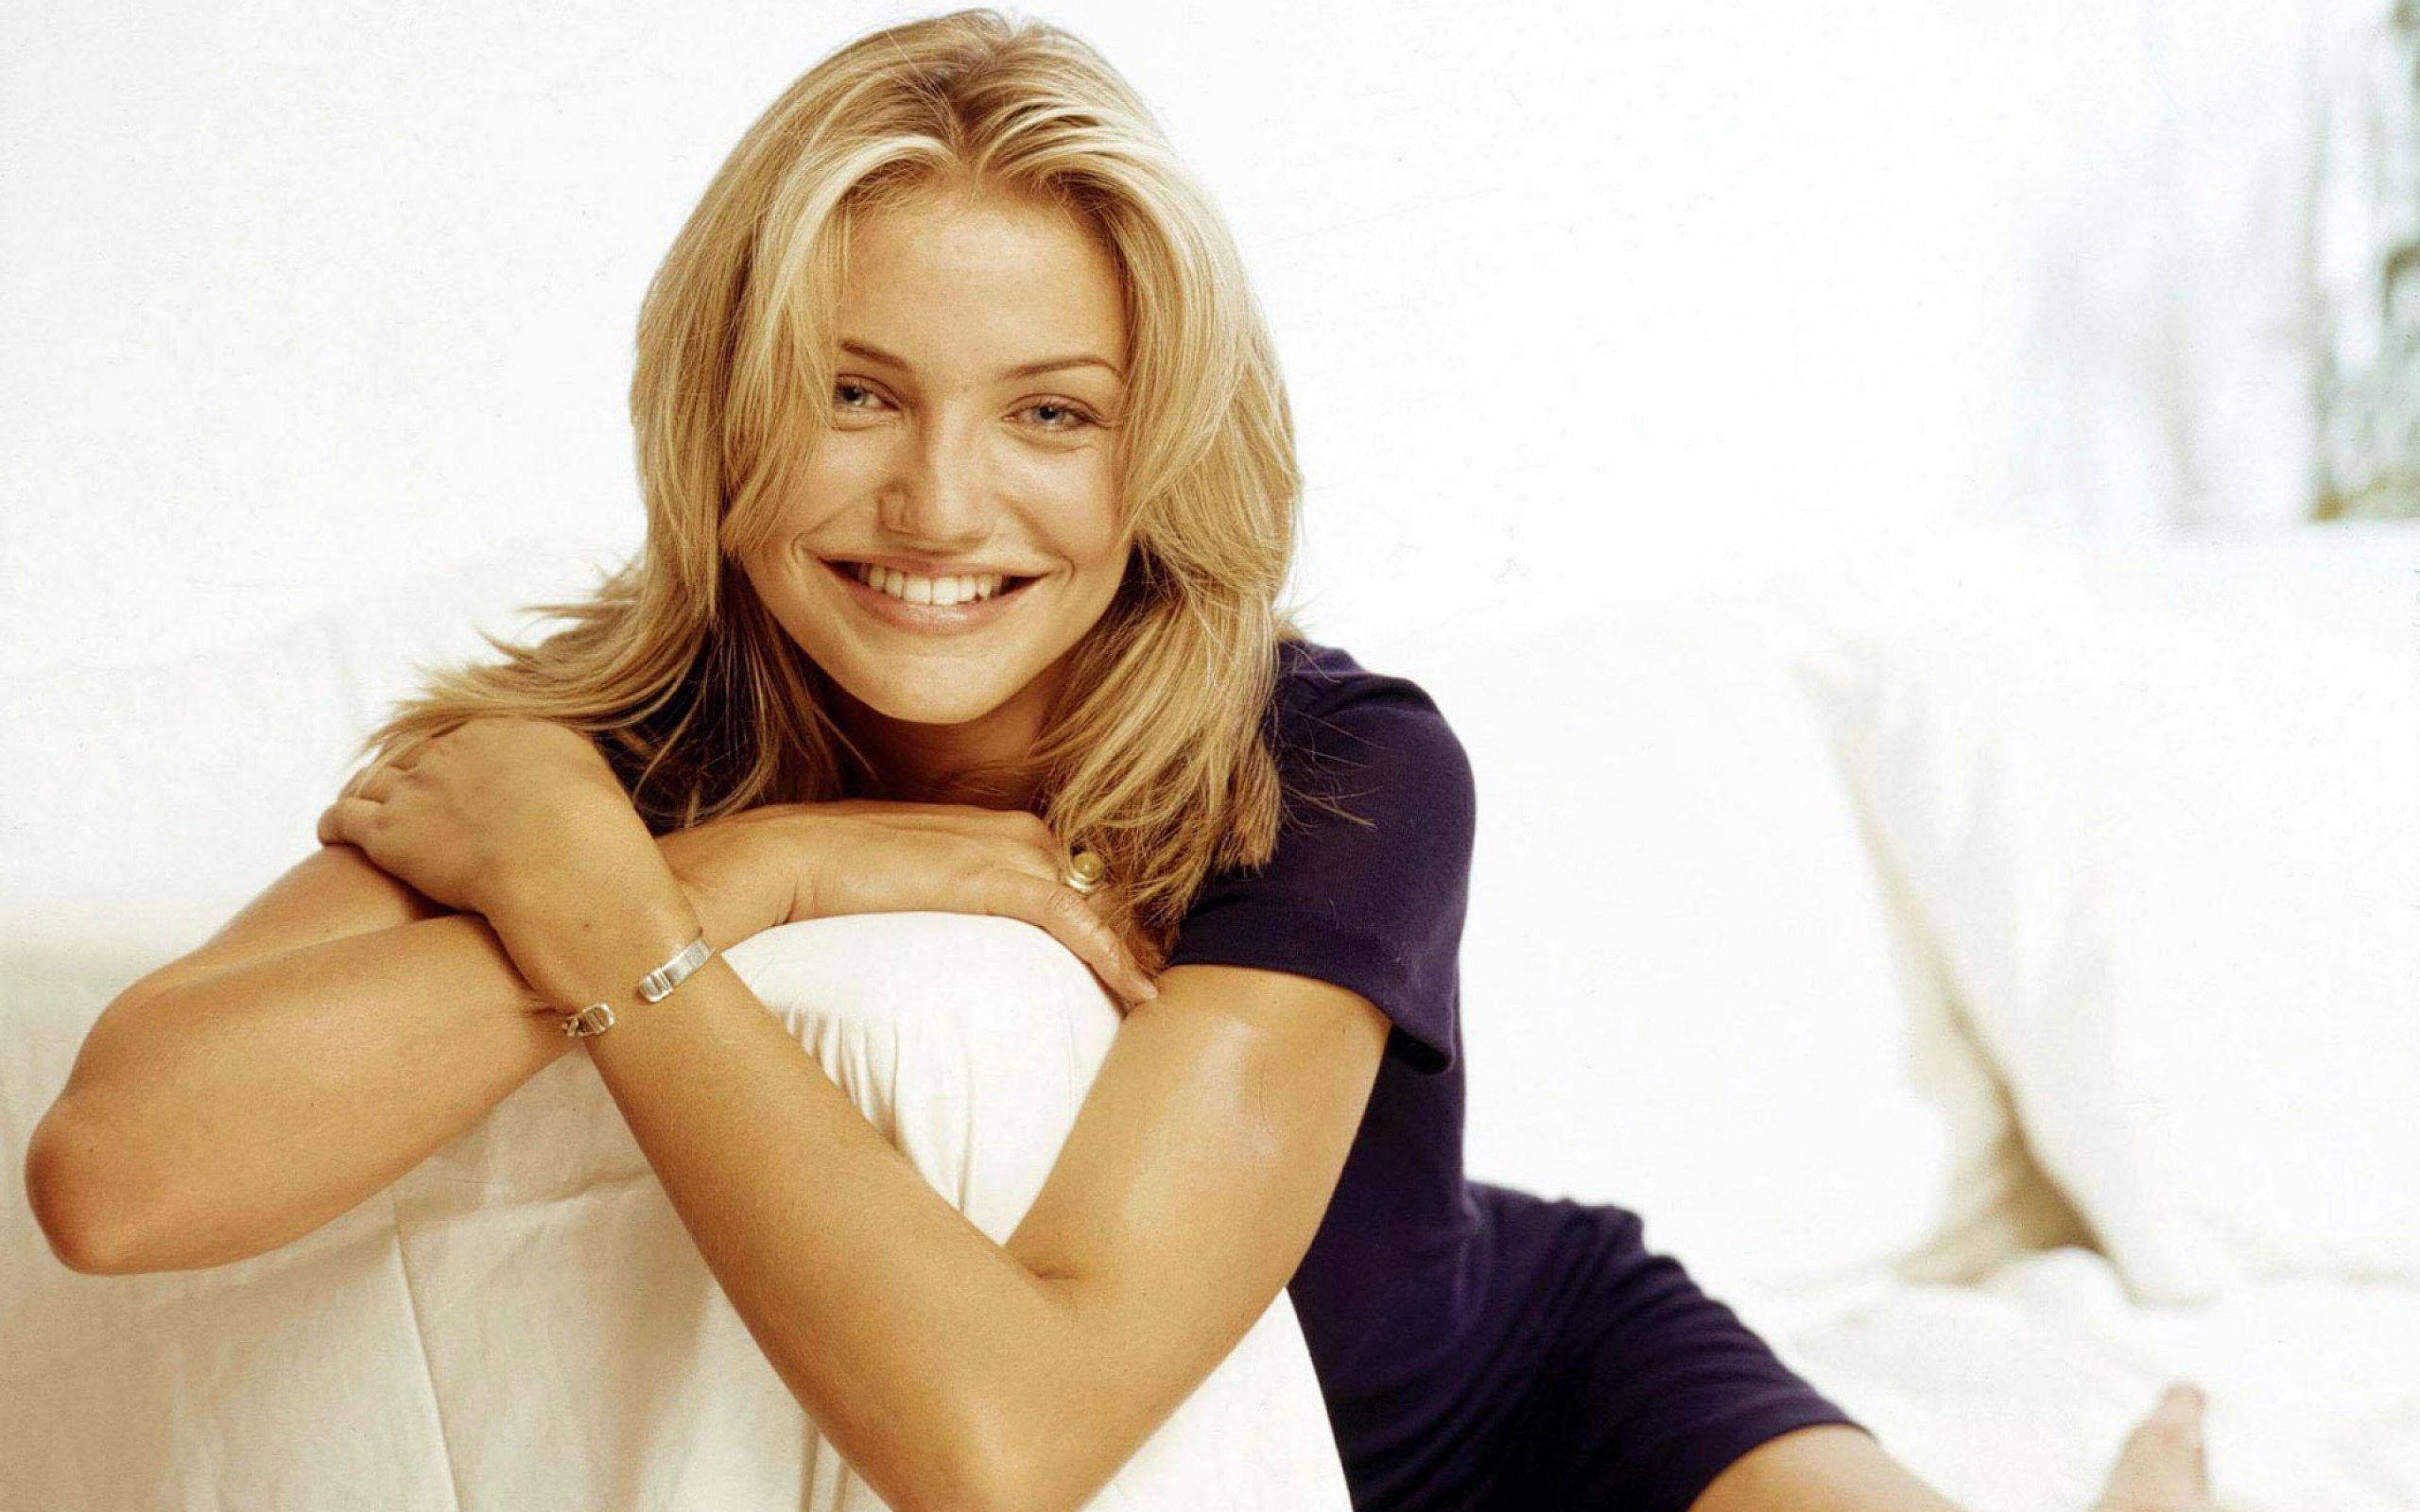 Cameron Diaz 28 Hollywood Actress Wallpapers 2560x1600